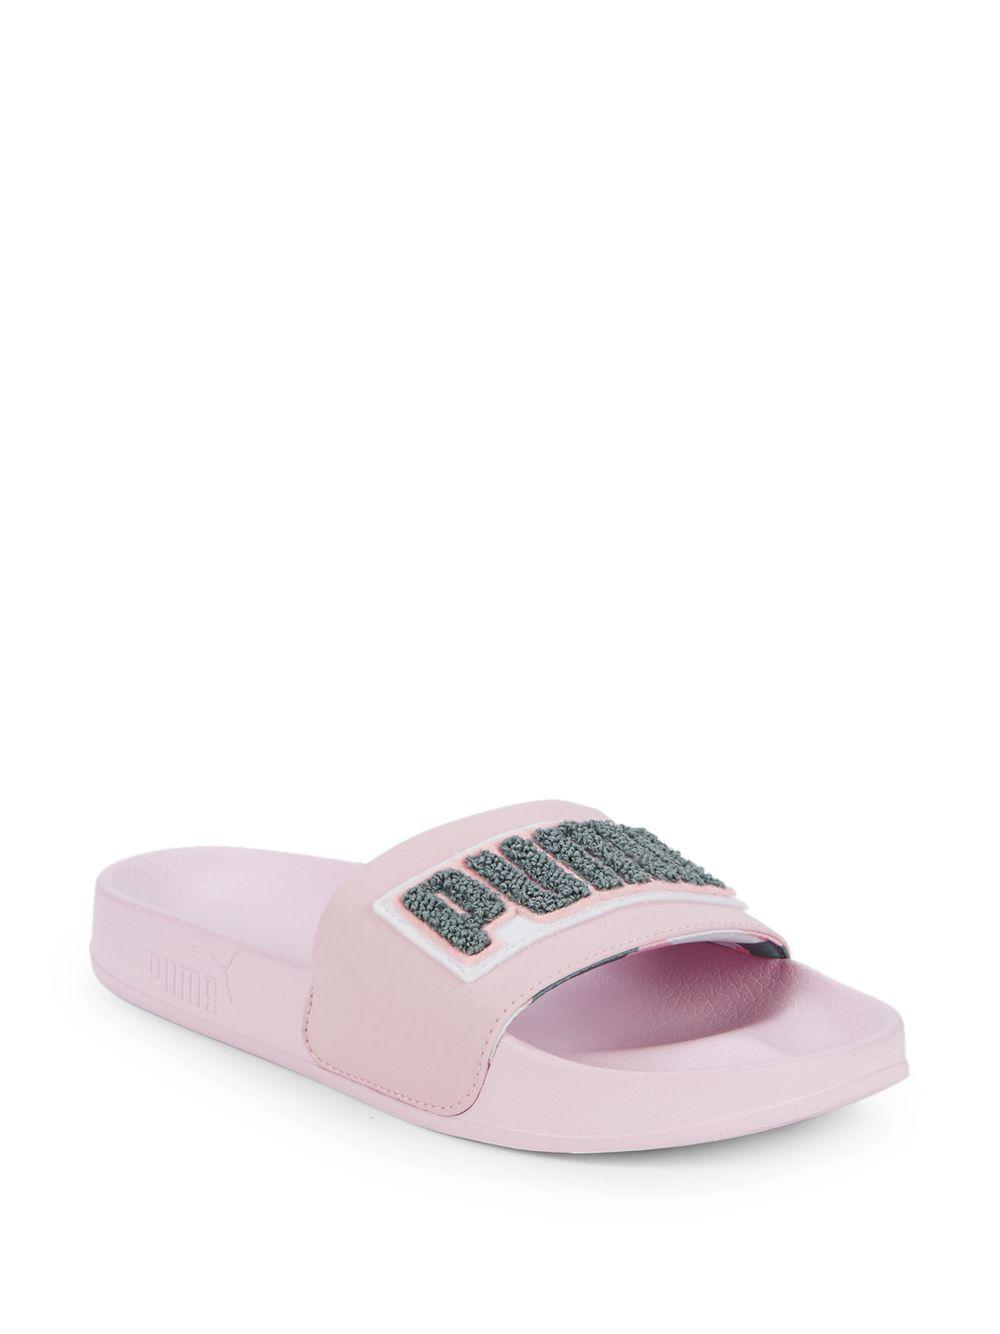 d6bc9c0aed2bd6 Lyst - PUMA Leadcat Slide Sandal in Purple - Save 53%